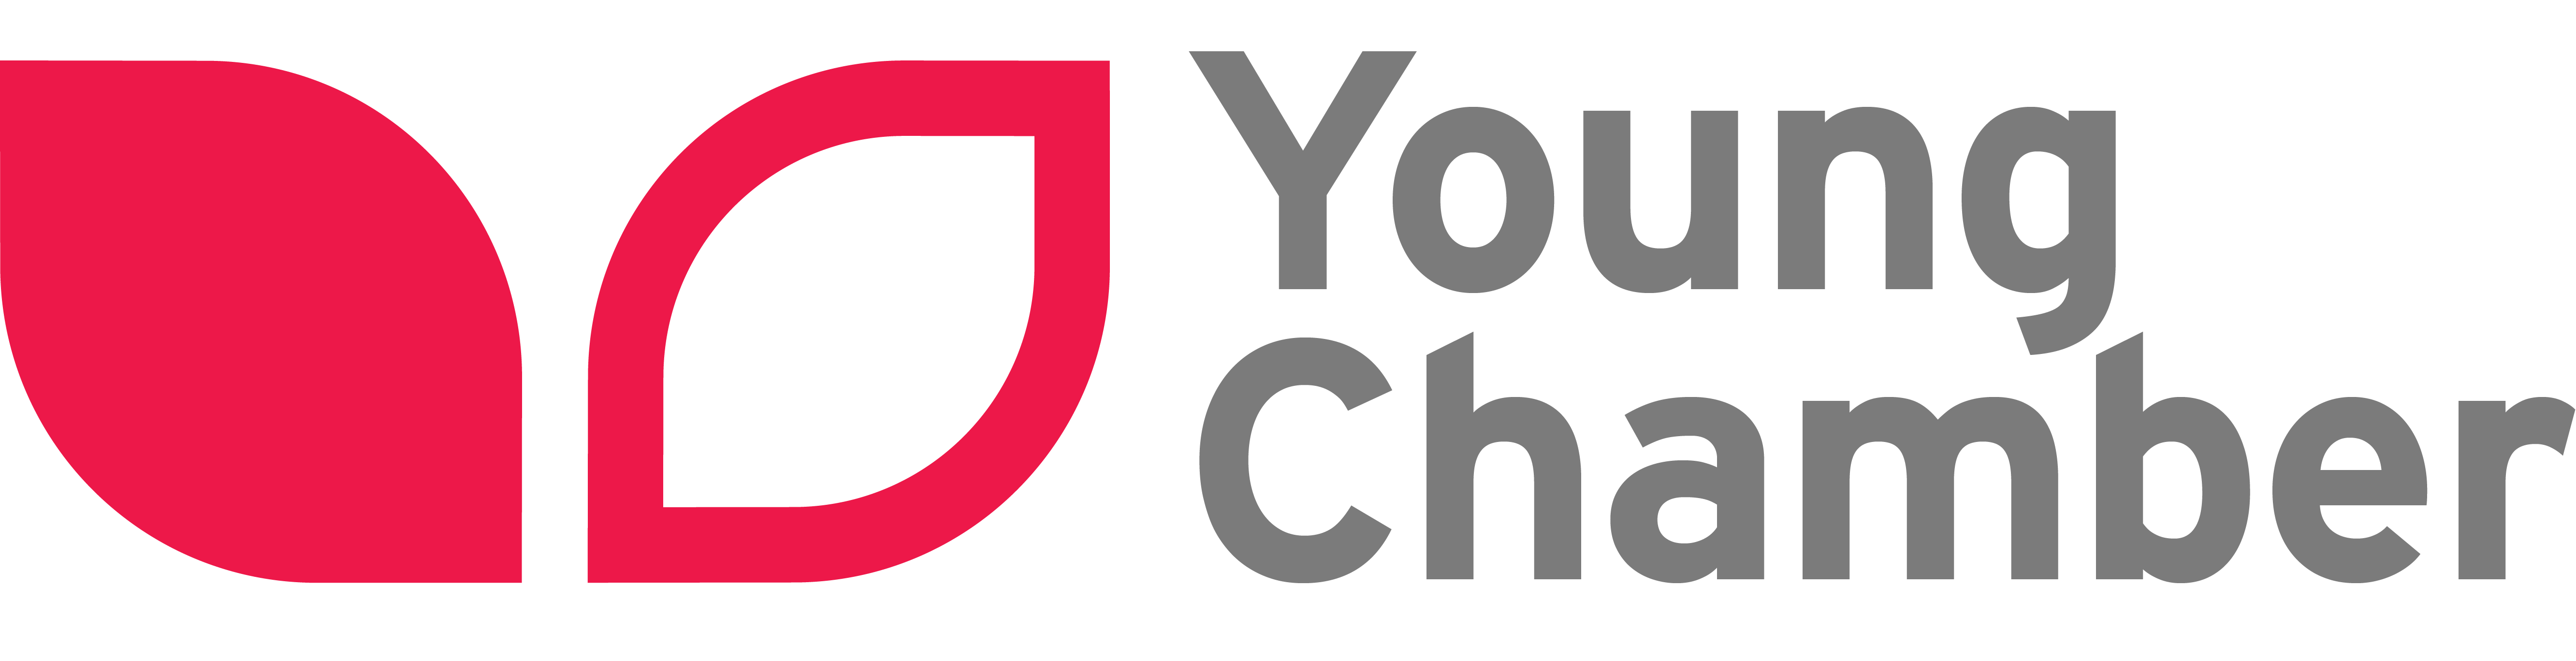 Young chamber north western lancashire chamber of commerce for Chamber of commerce